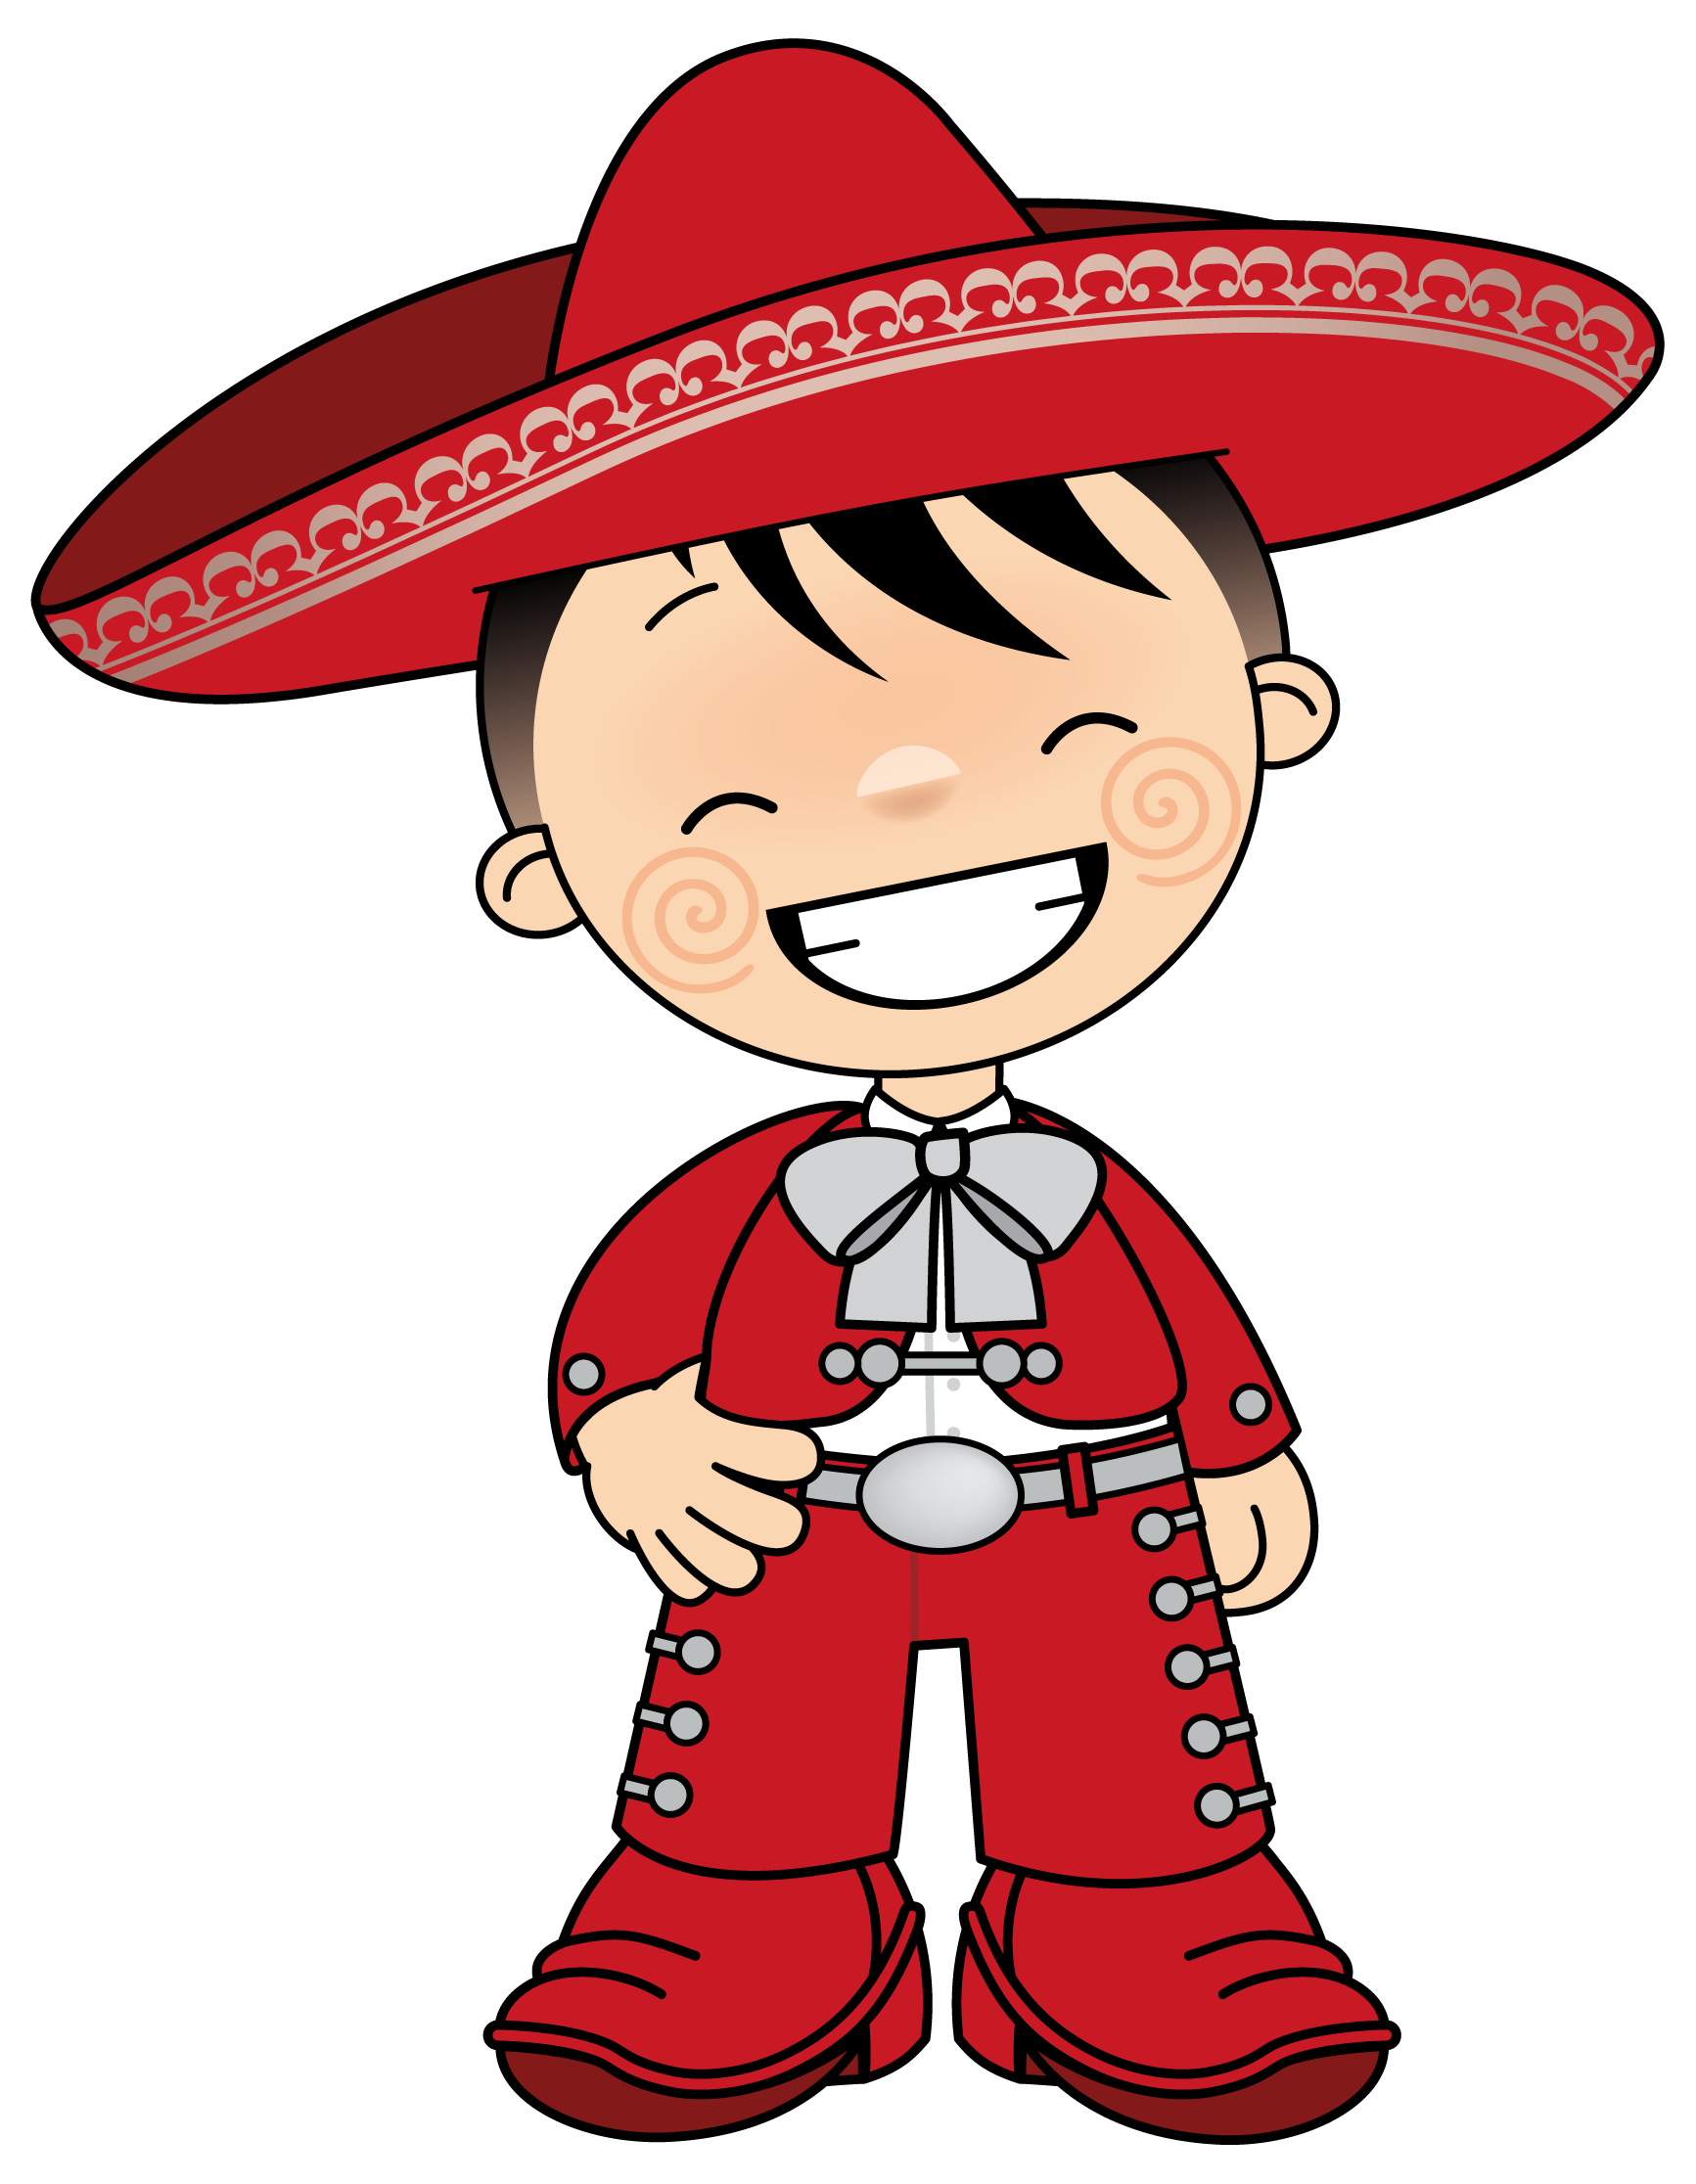 Charro clipart clipart images gallery for free download.